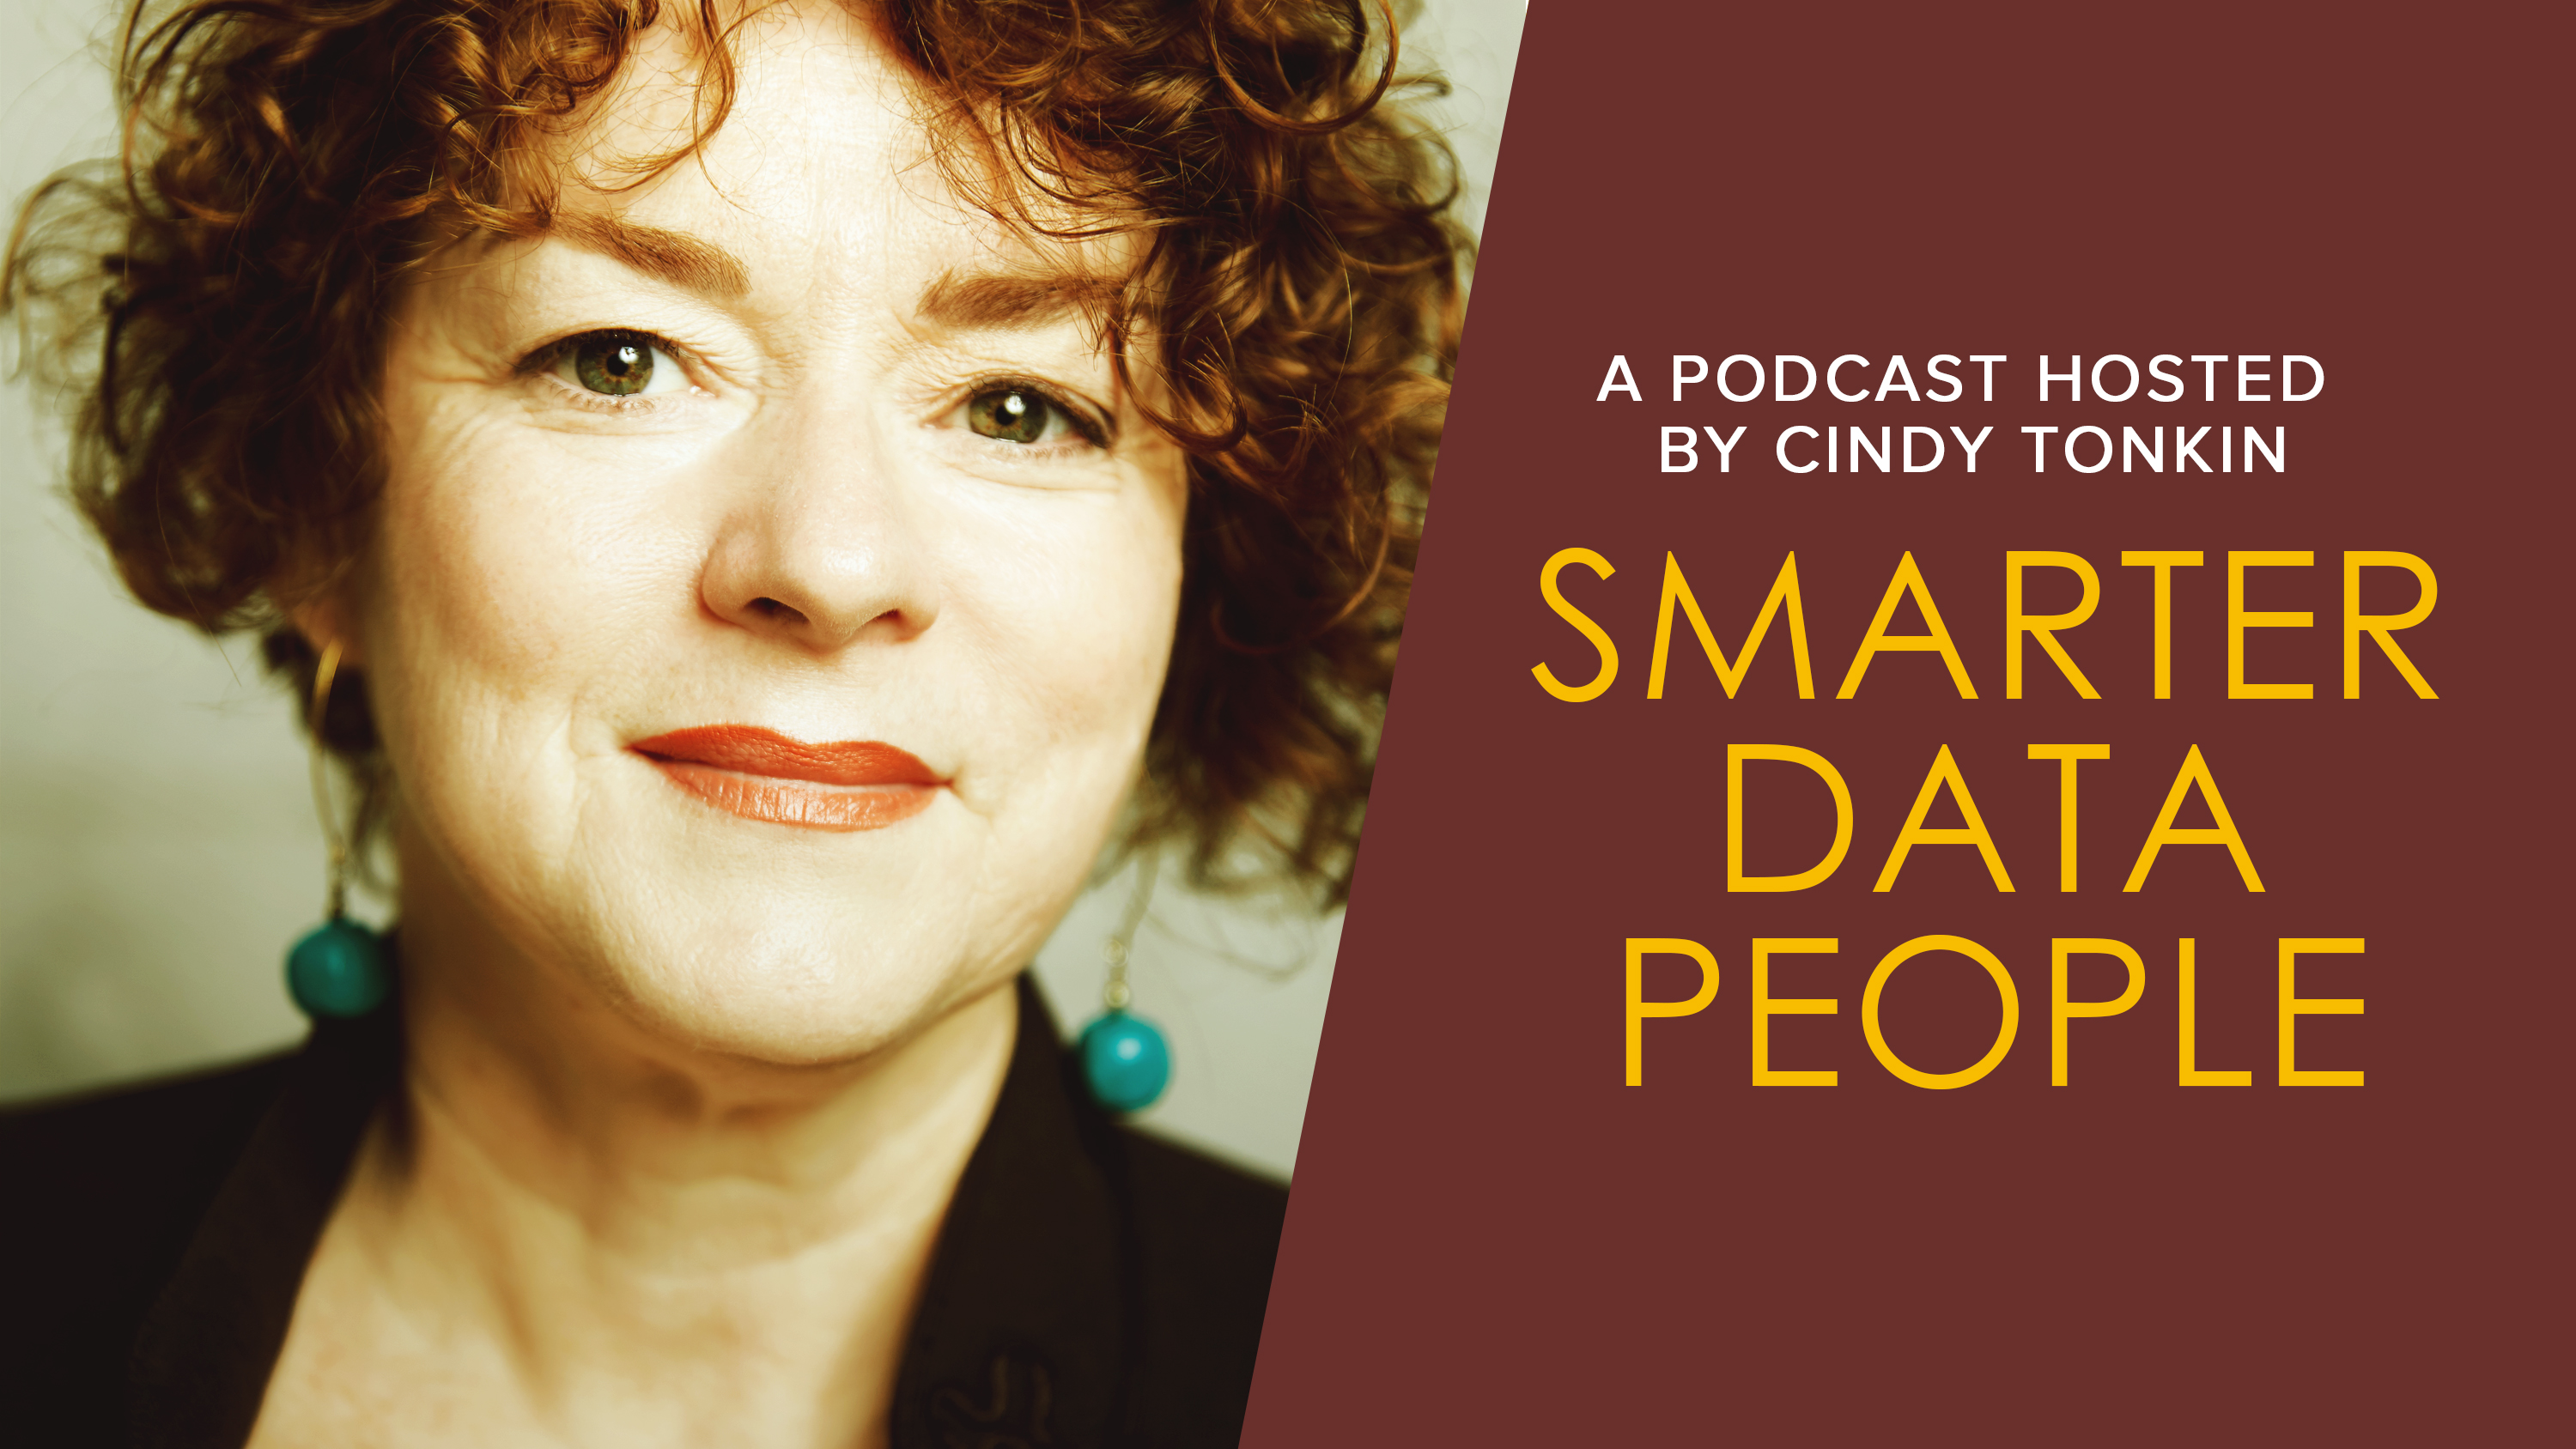 Helen Lawson Williams on Smarter Data People Podcast